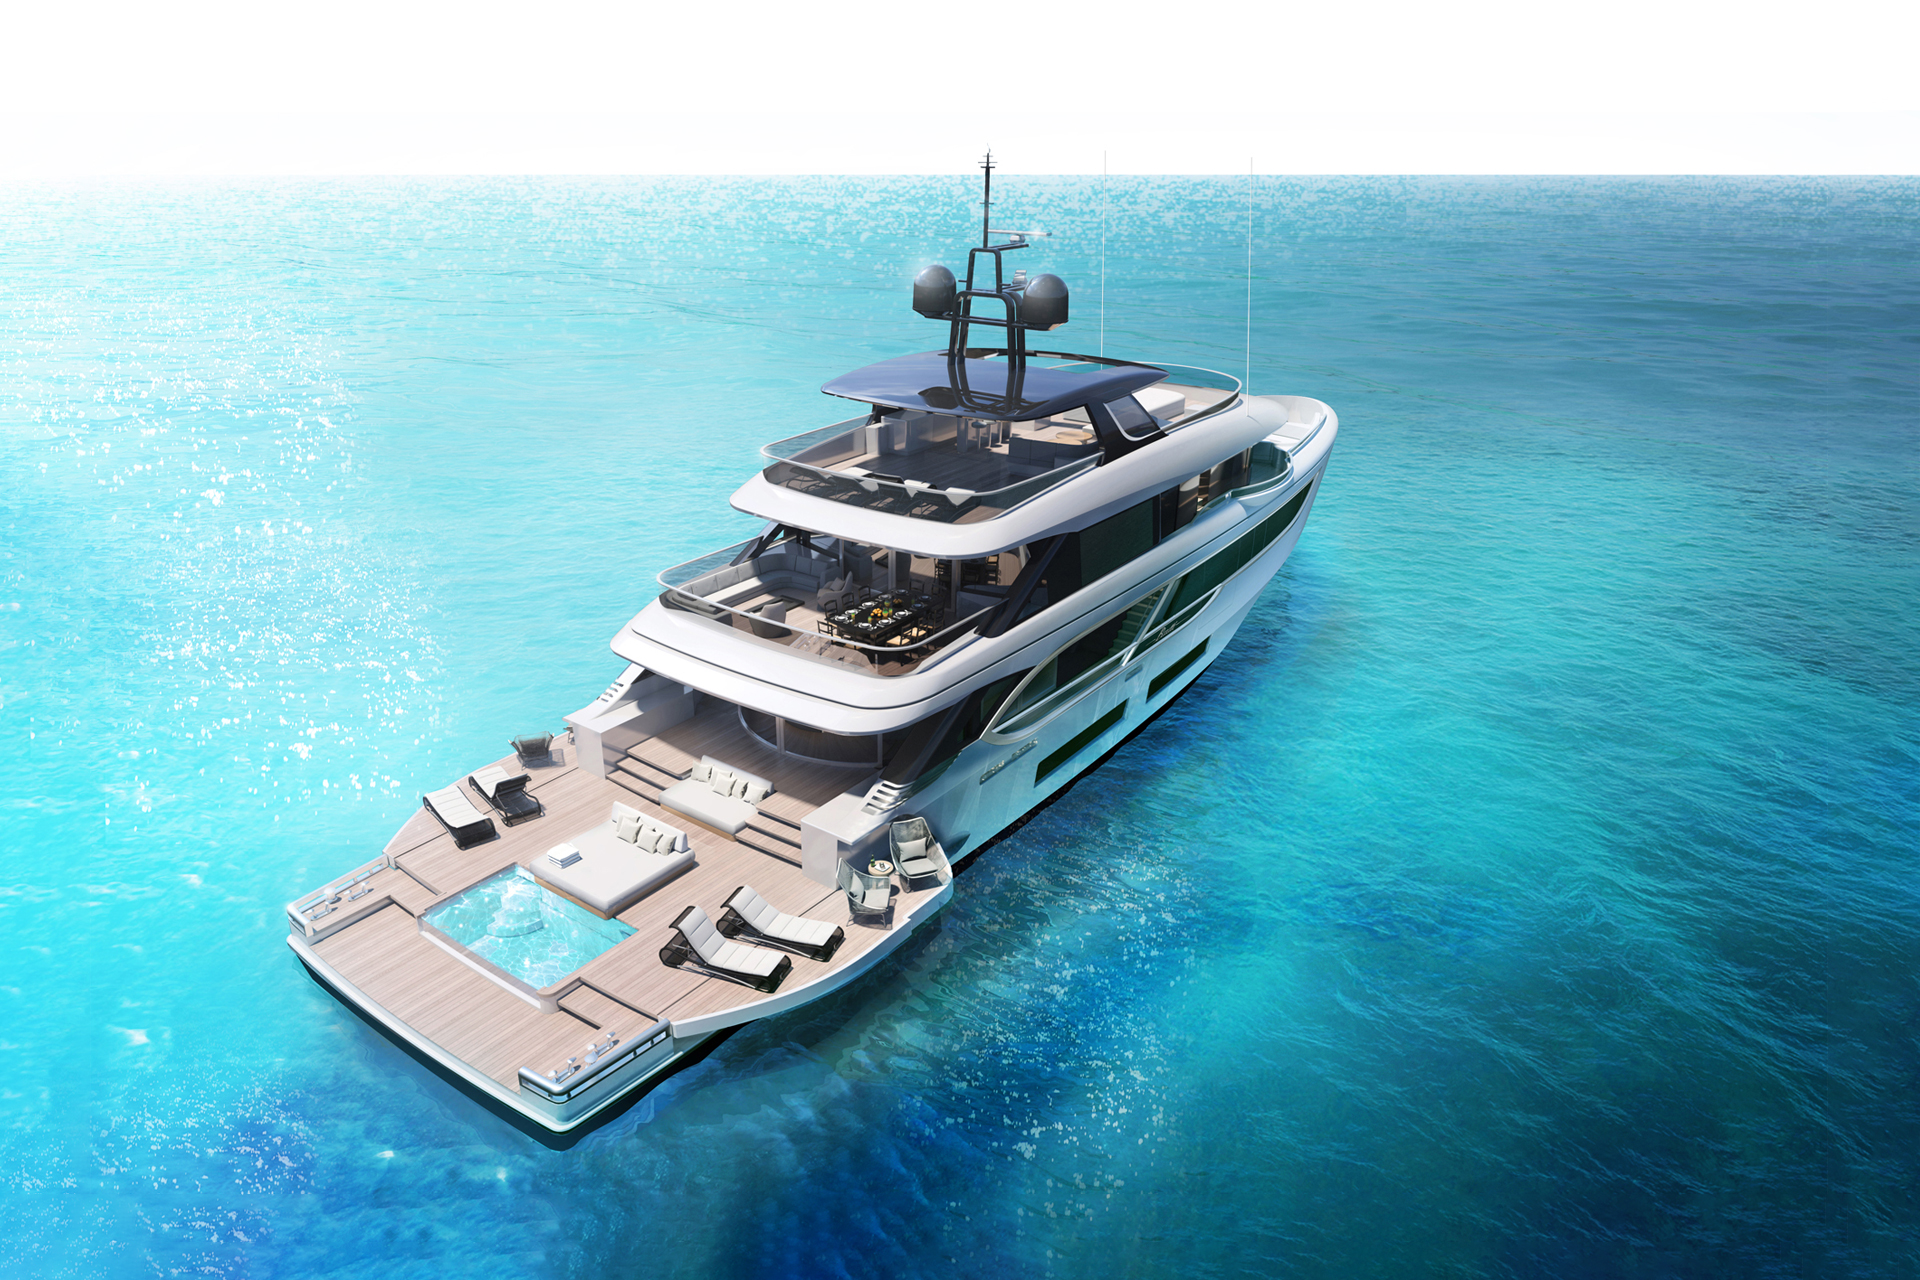 41 metre oasis 135 superyacht by benetti yacht harbour